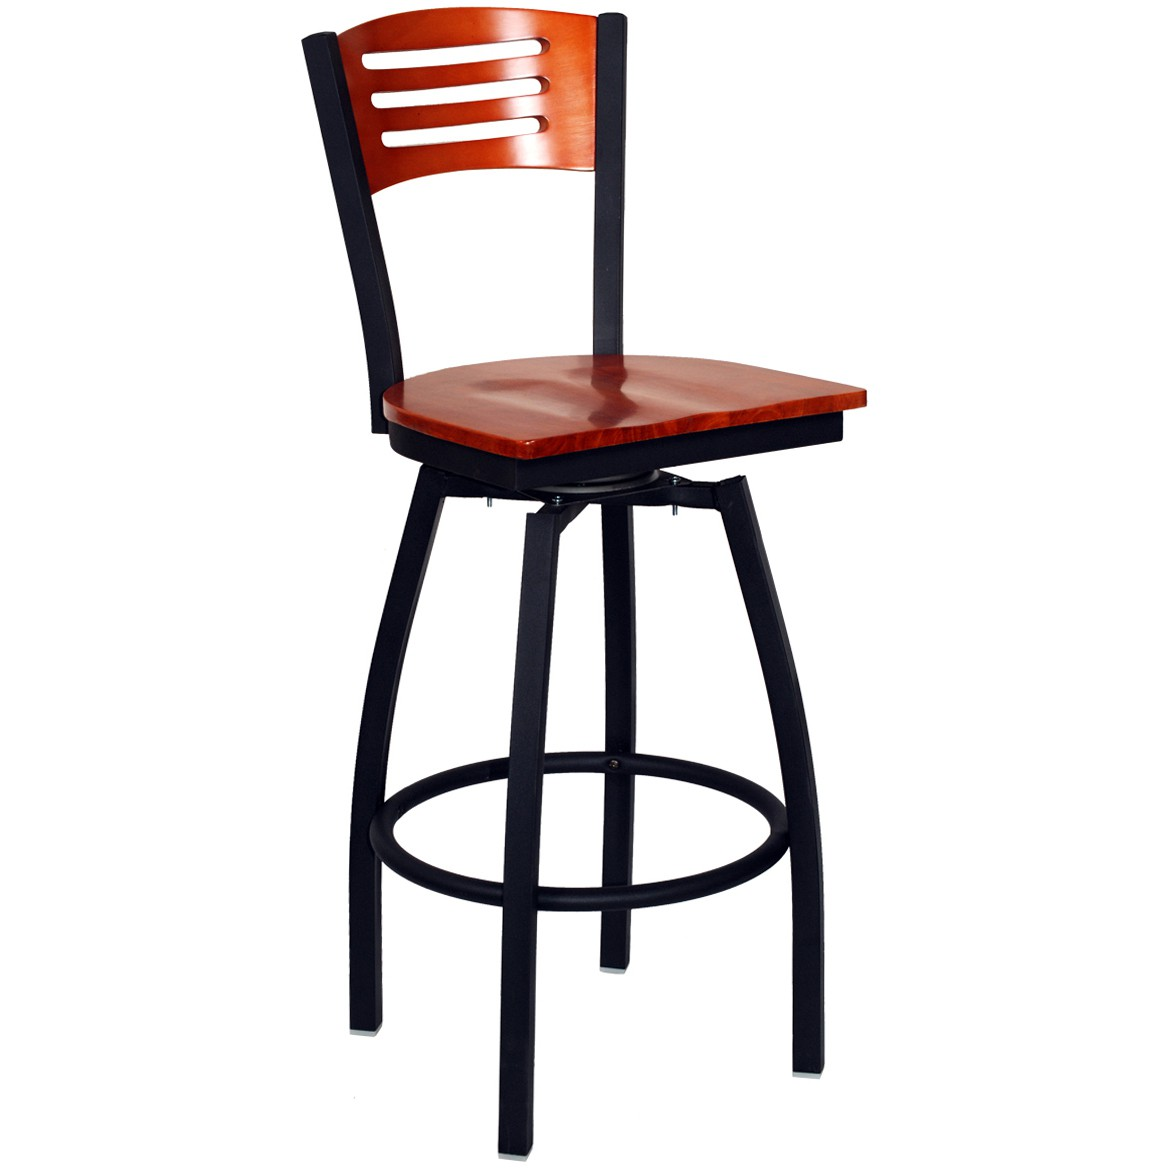 Very Impressive portraiture of Interchangeable Back Metal Swivel Bar Stool with 3 Slats #FRU 131 BS with #BE340D color and 1168x1168 pixels